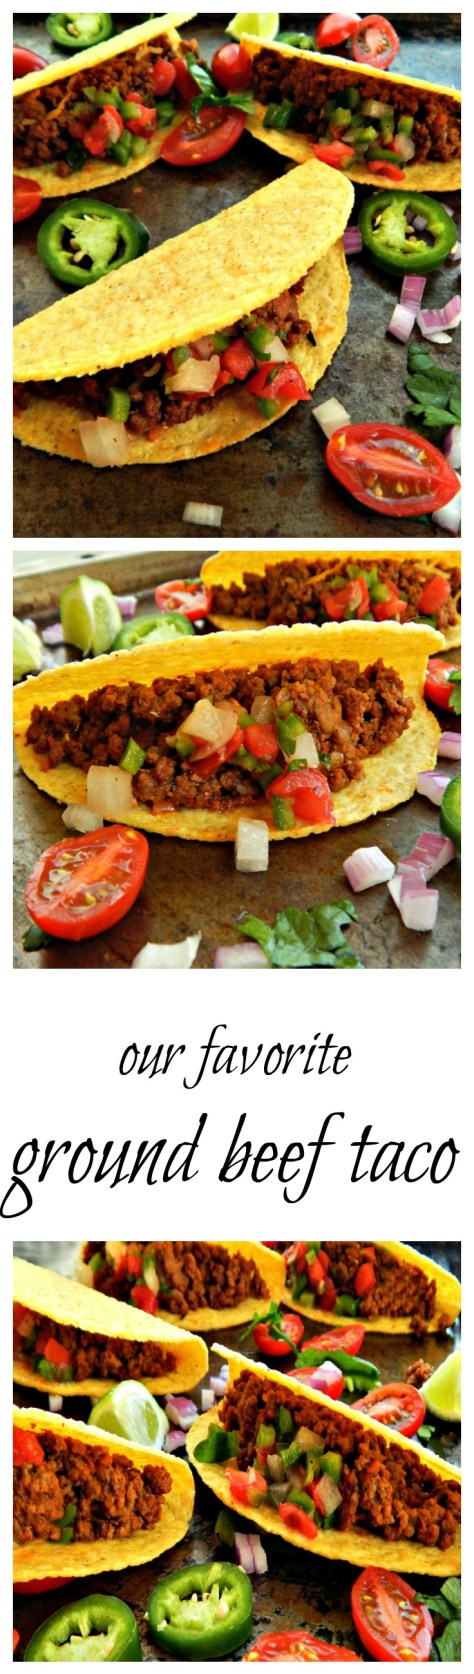 Our family's taco - make with a home-made classic seasoning or with our smokin' chipotle taco seasoning.